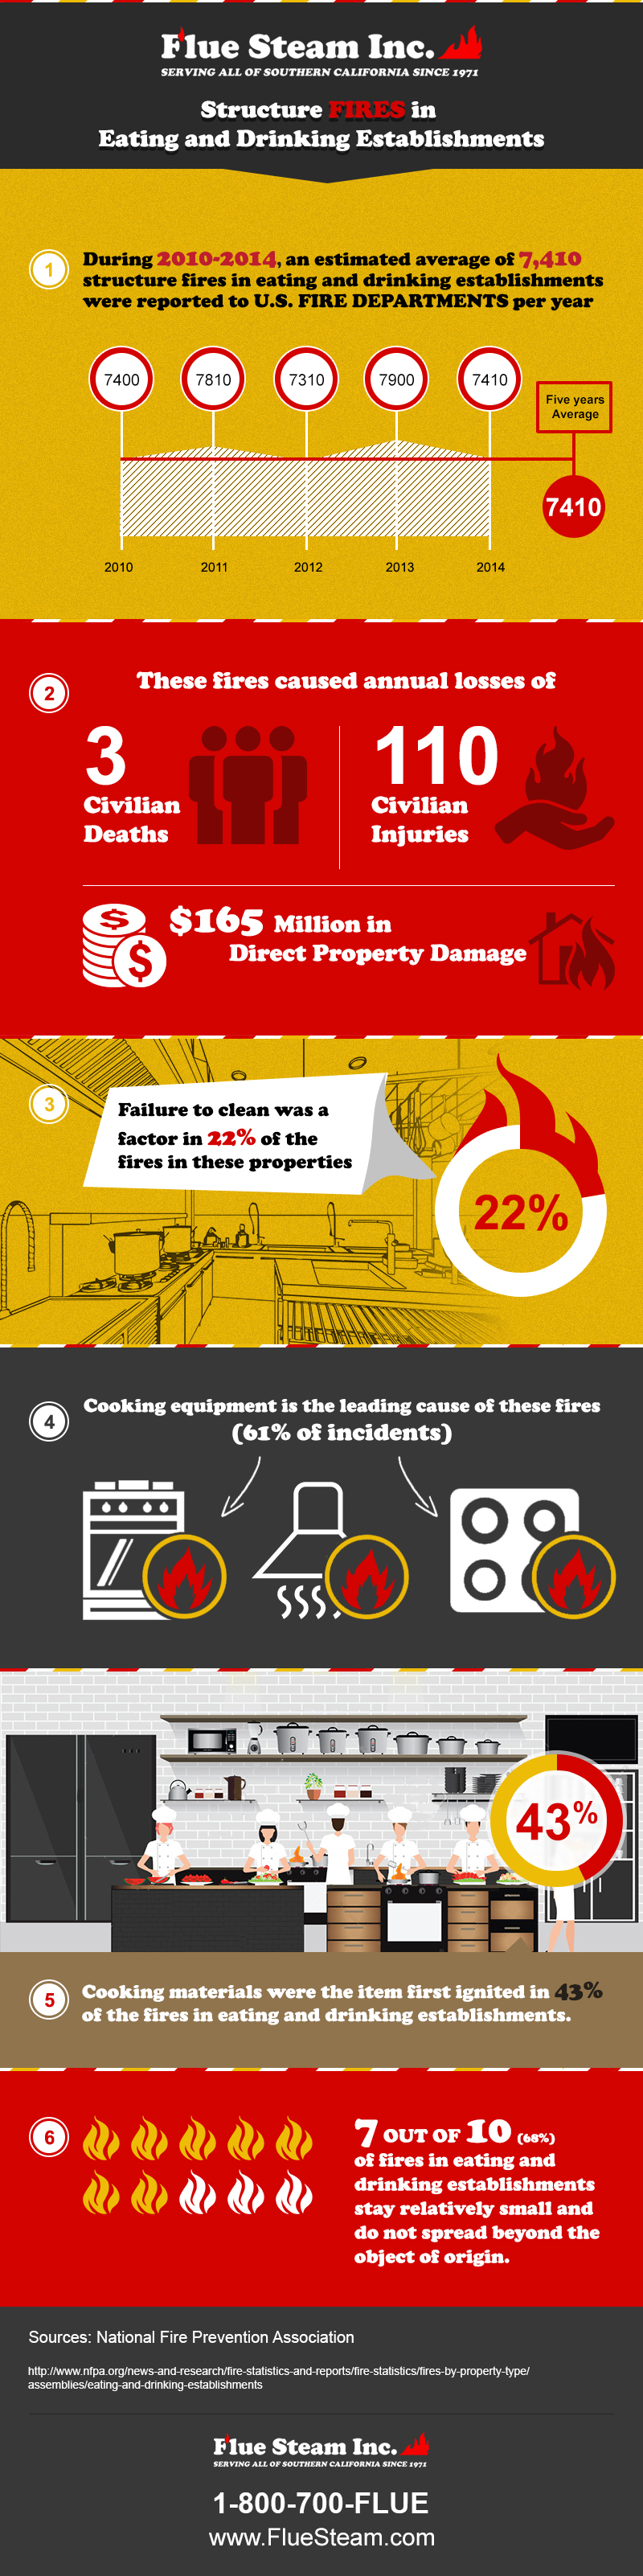 infographic-fire-03.April.2017